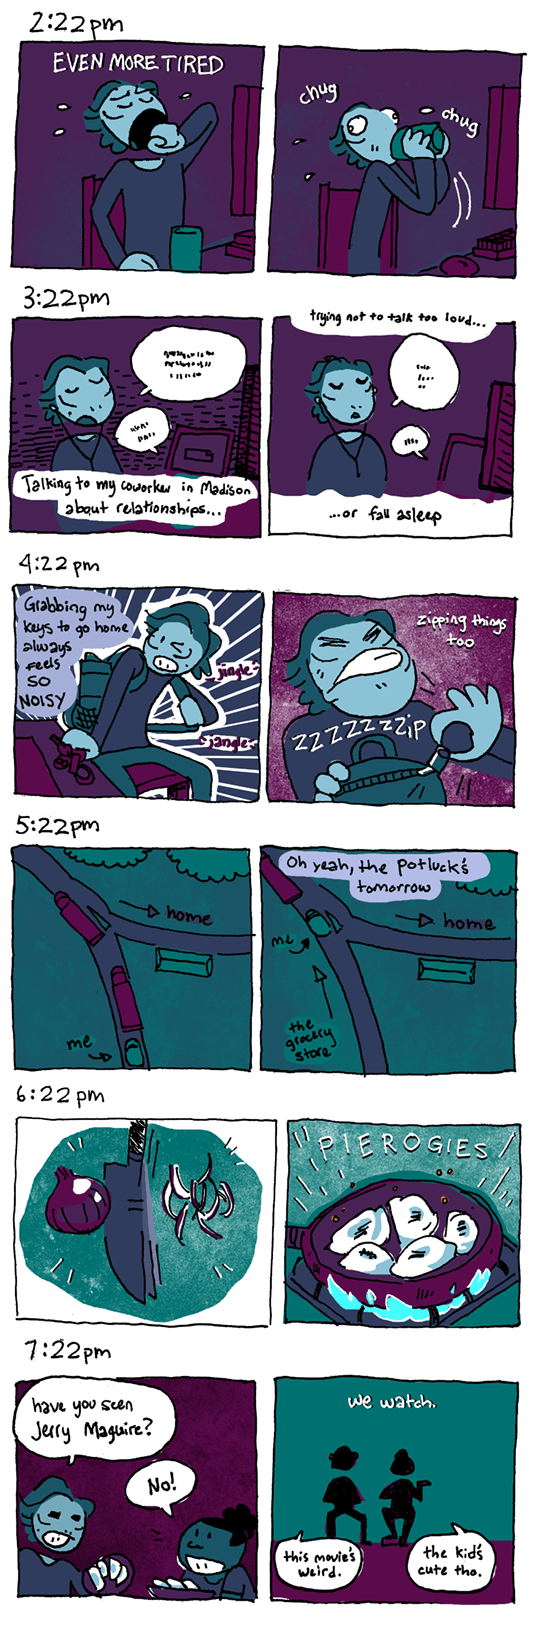 54 – #HourlyComicDay pt. 3